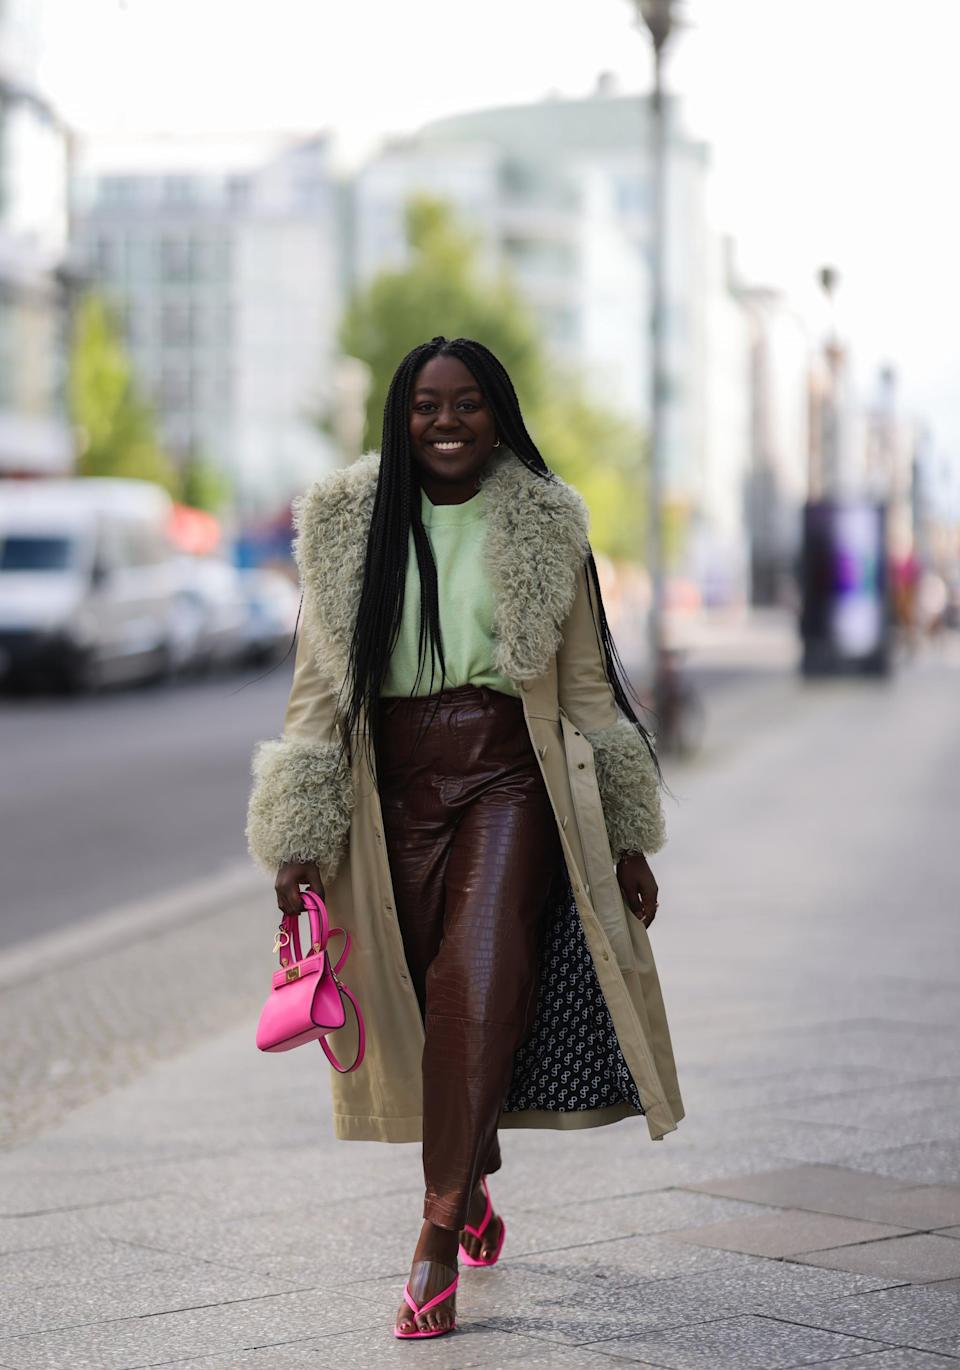 <p>With furry accents at the collar and sleeves, coats get a glam update this season. The look is slightly disco, though rest assured, it can be easily pared down with jeans, tees, and sneakers. In short, you'll get your money's worth when you dress it up or down, no matter the occasion.</p>